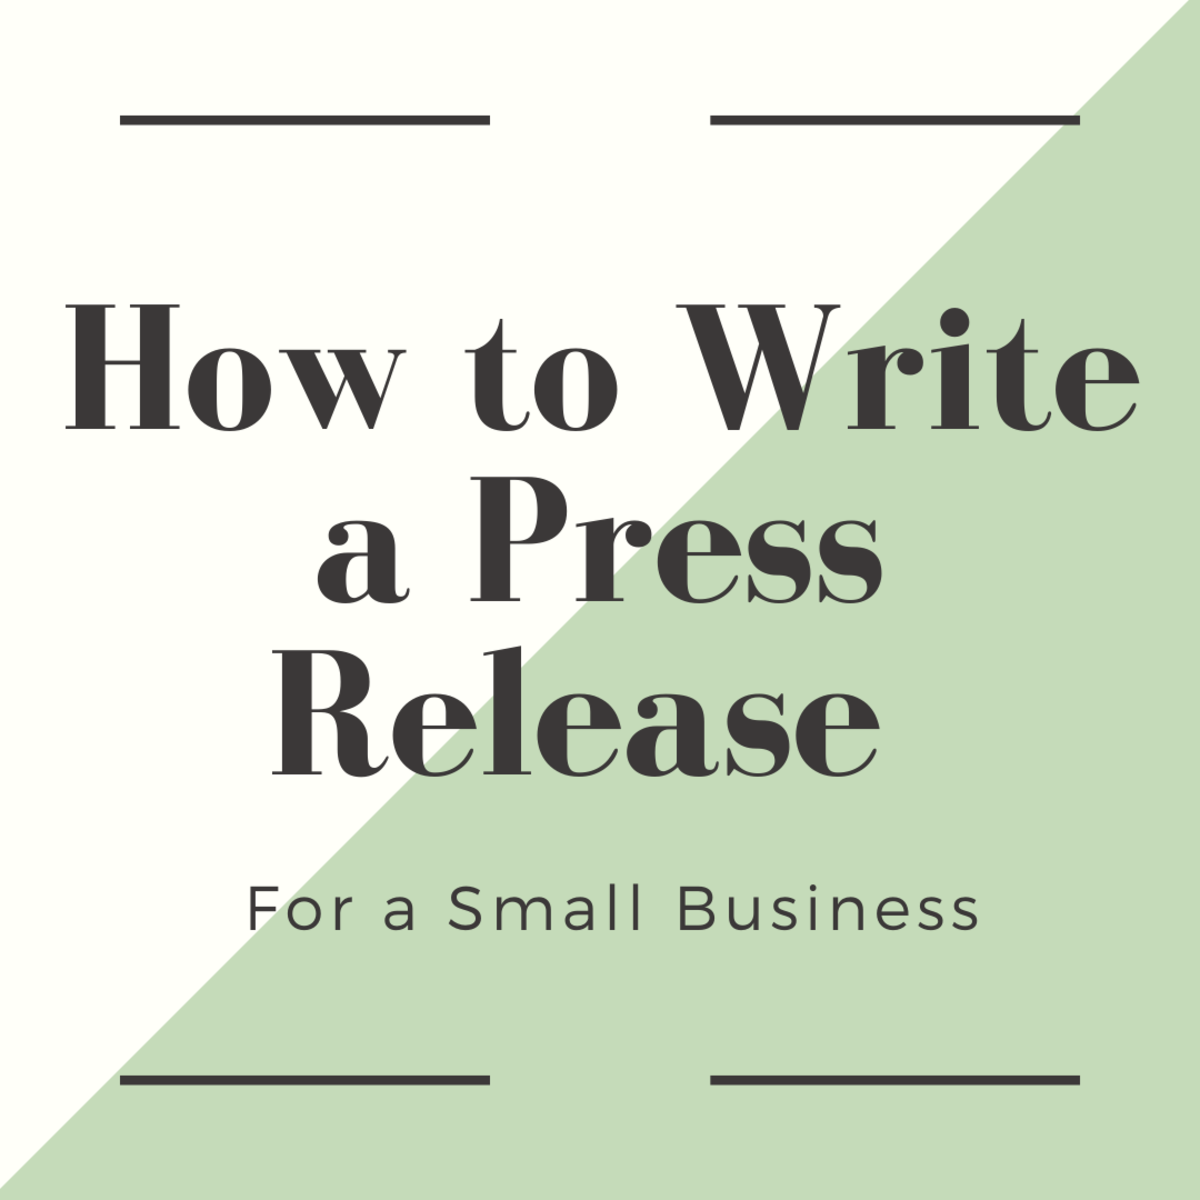 As a small business owner, it's important to know how to write a press release.